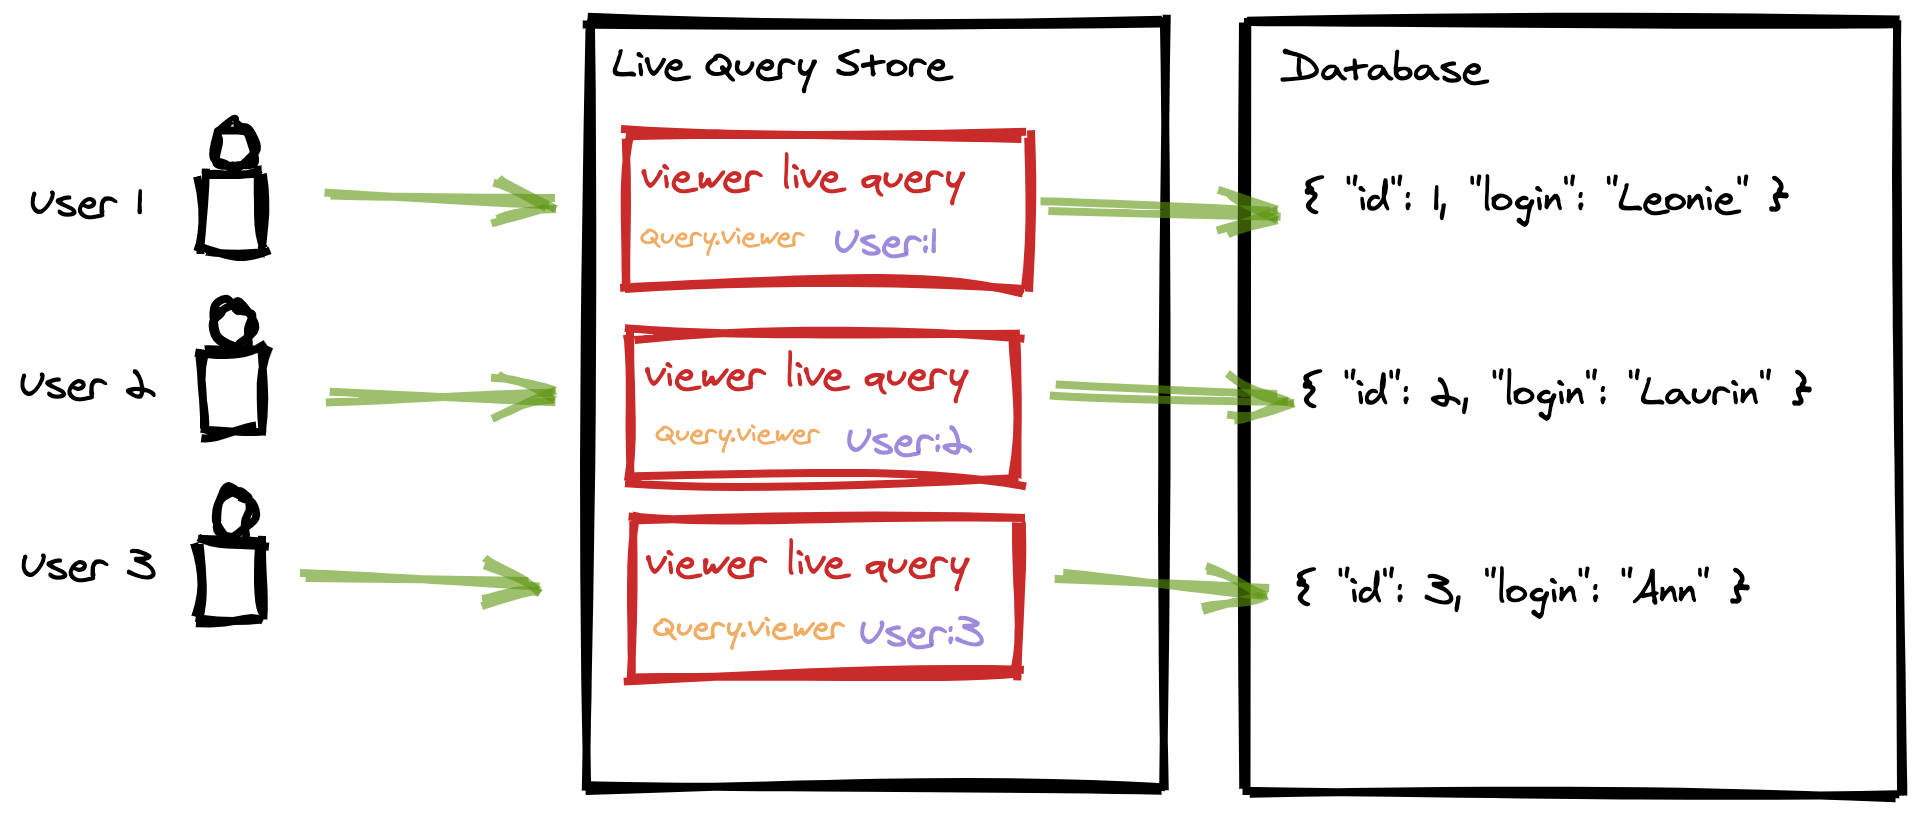 Live Query Store with resource identifiers and schema coordinates on operation context